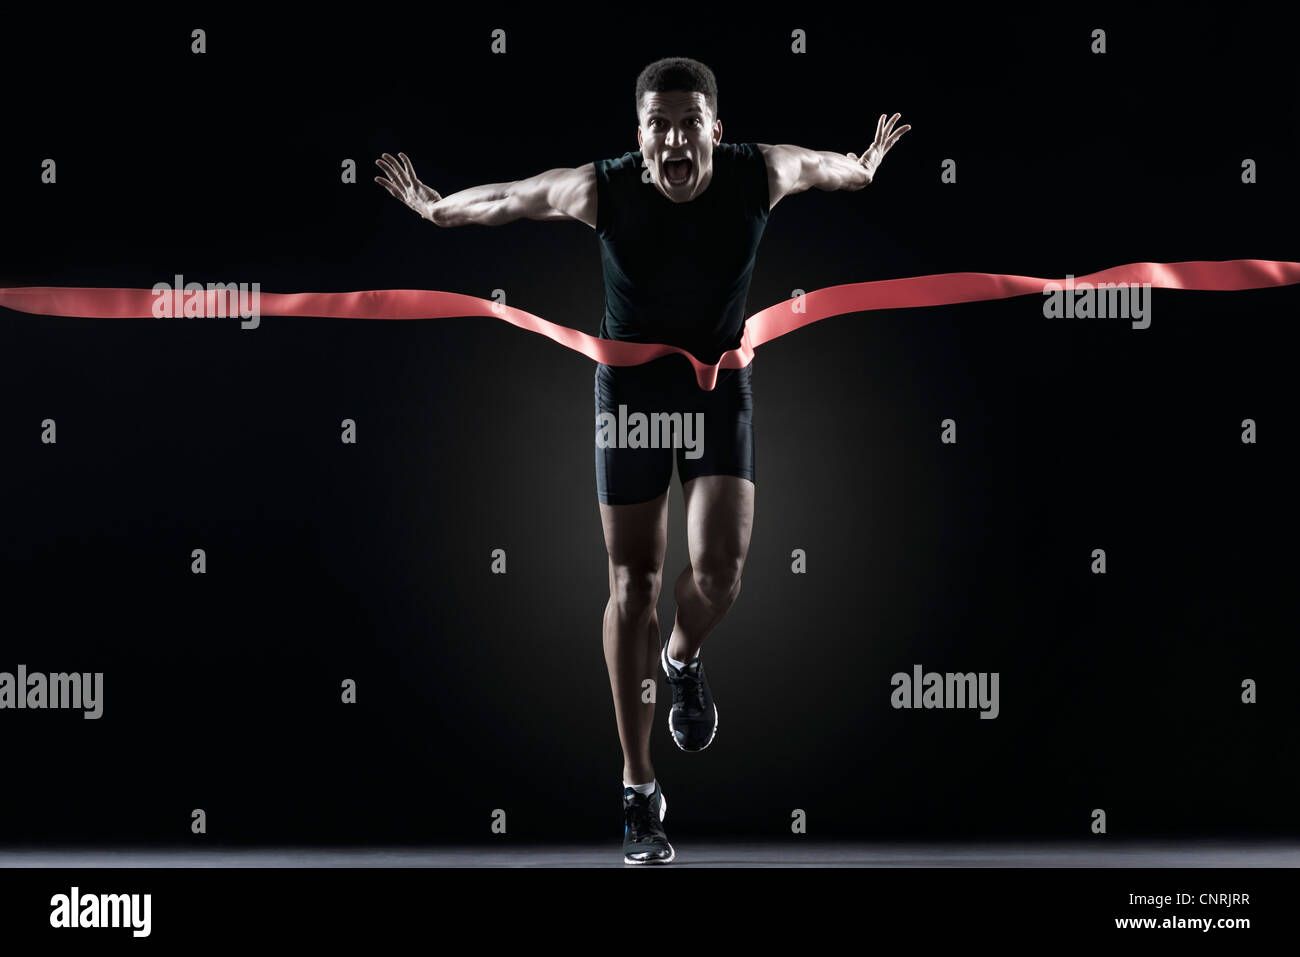 Runner crossing finishing line - Stock Image